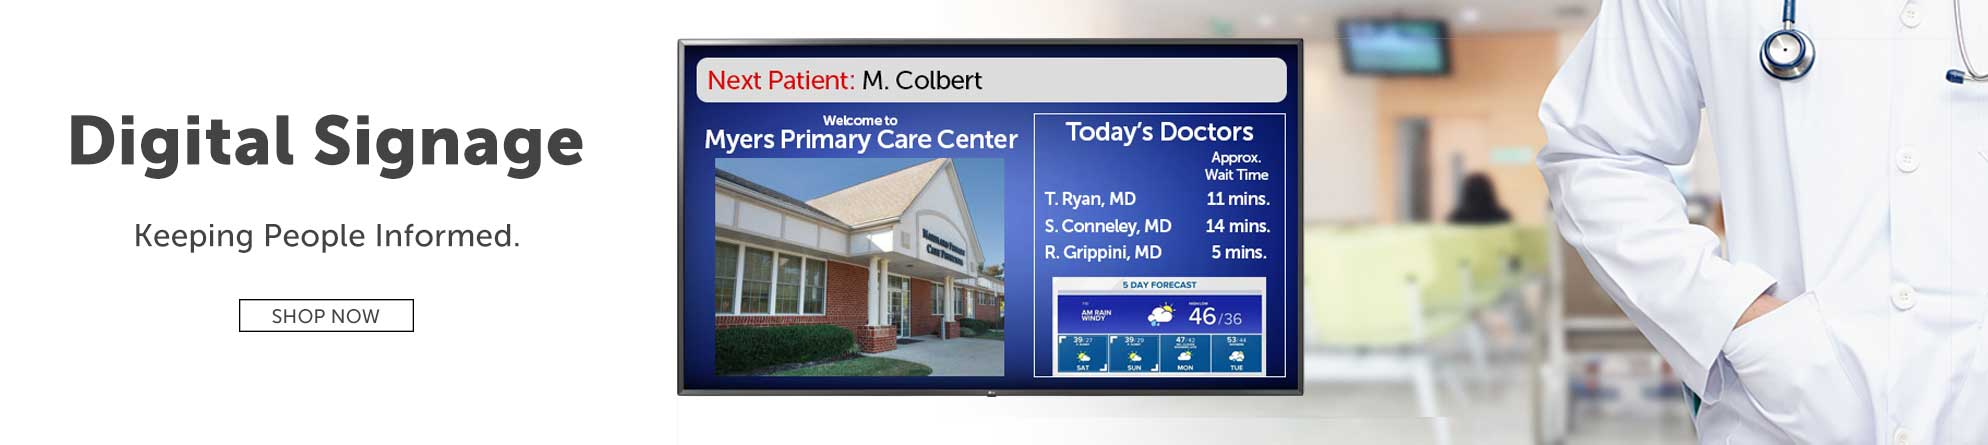 Keep people informed with digital signage for professionals